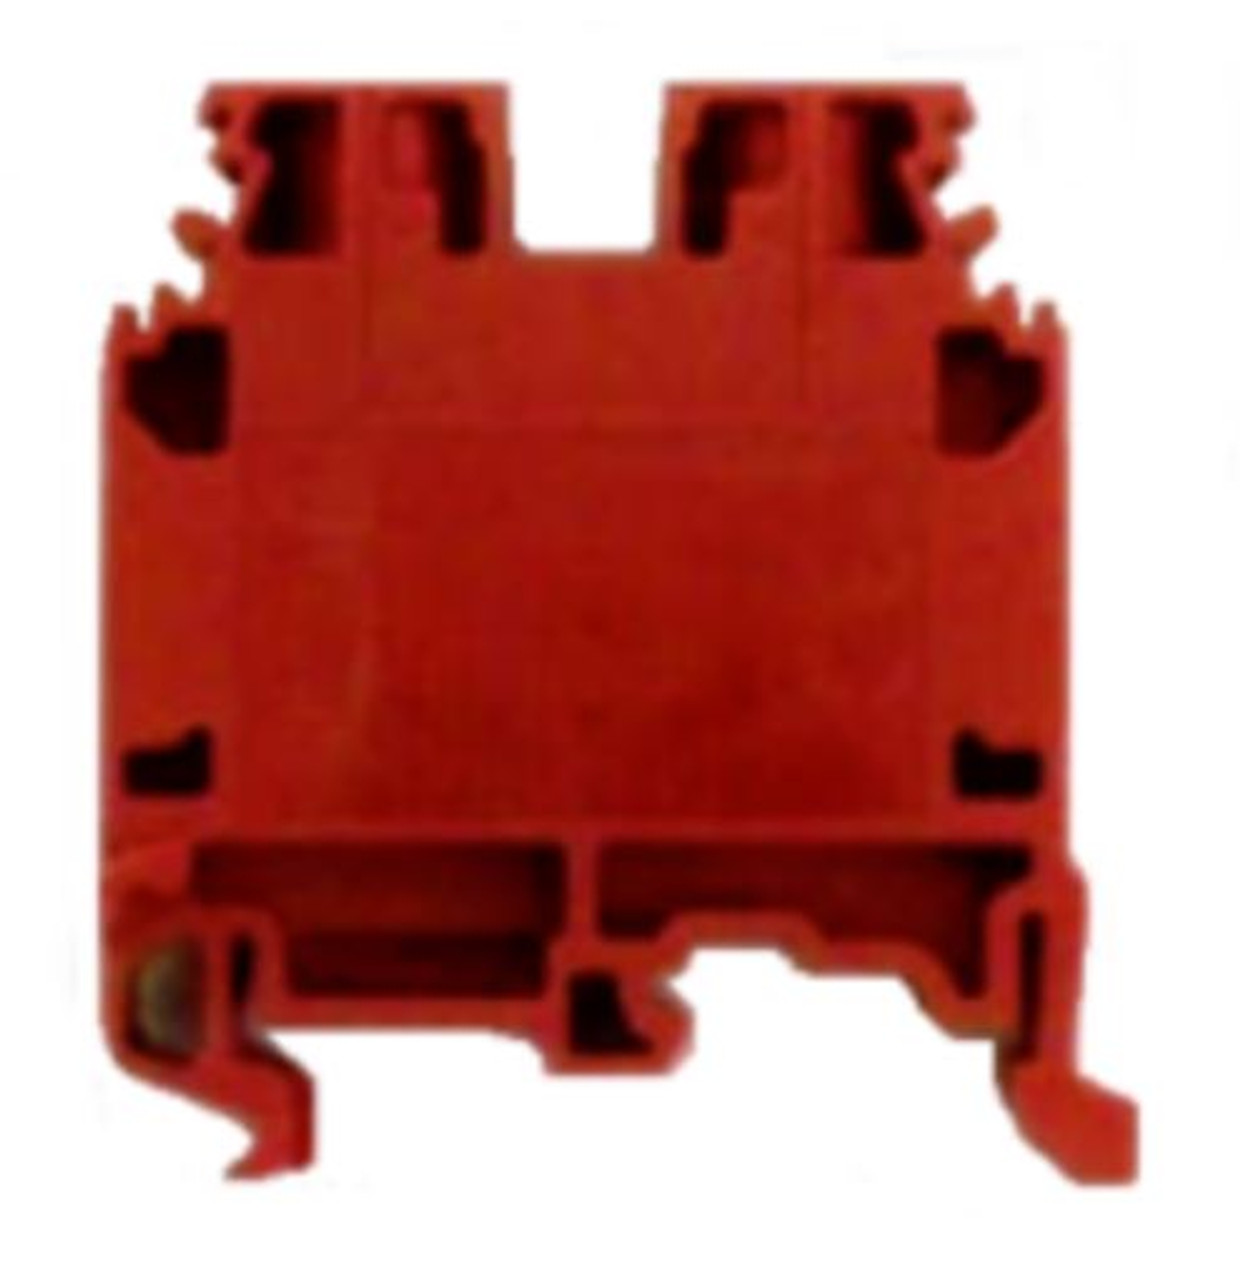 Soladeck Terminal Block 600V 50A Red